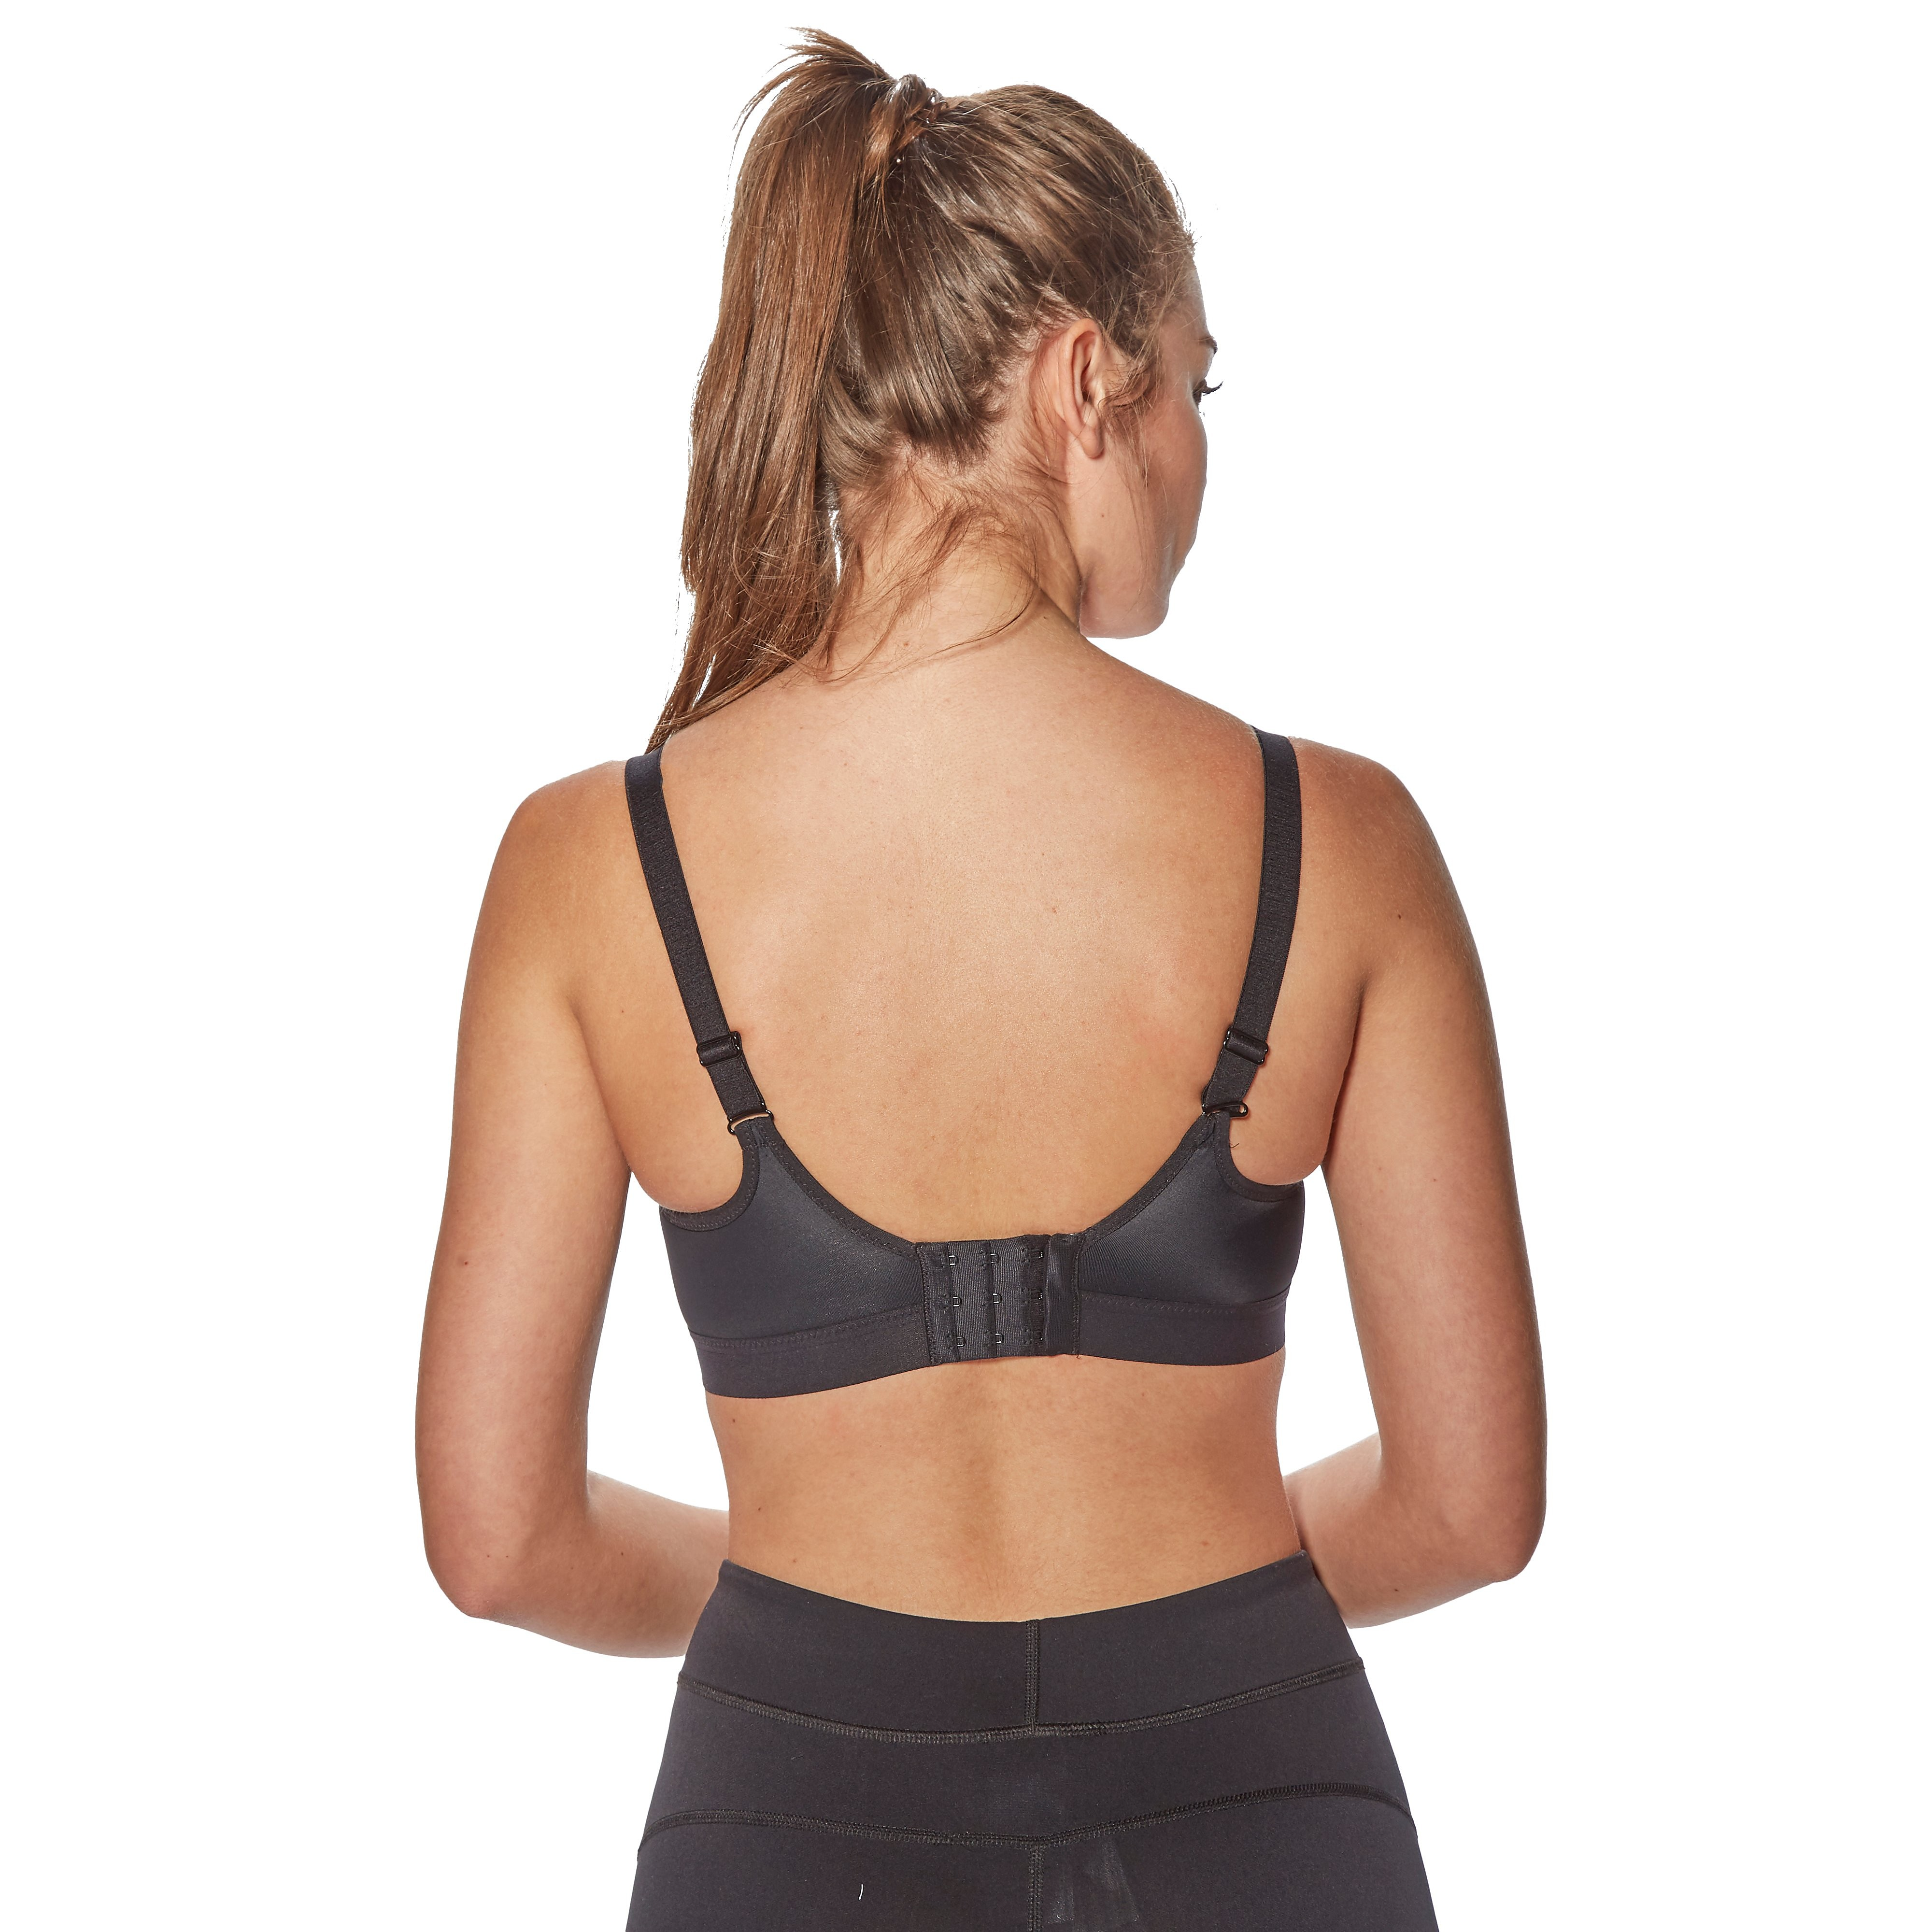 Shock Absorber Active Shaped Women's Support Bra